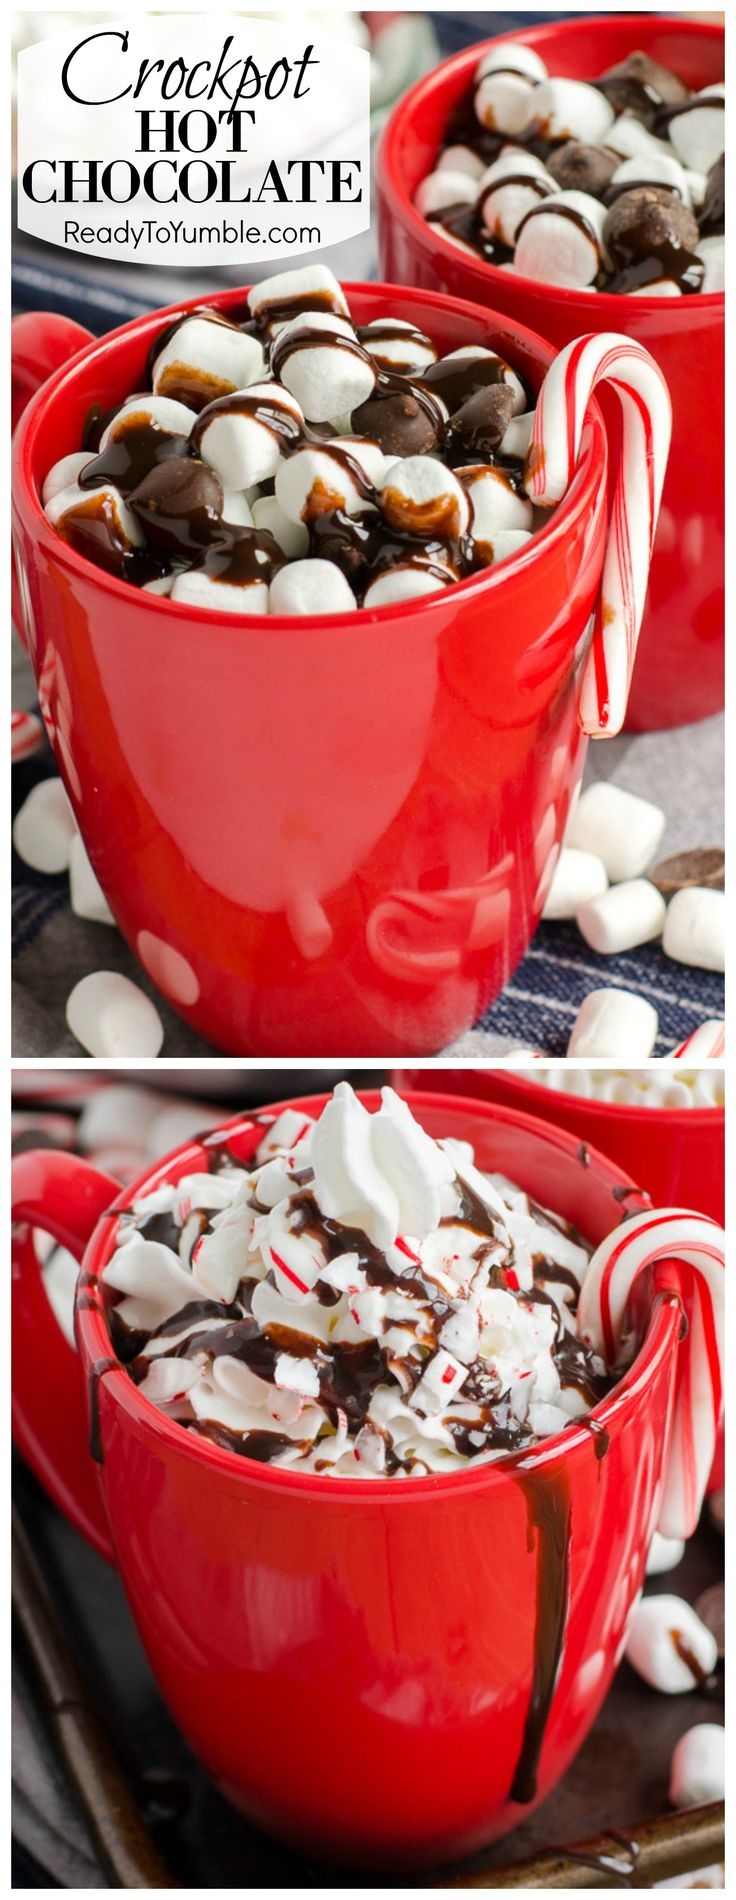 Making hot chocolate for a crowd - Crockpot Hot Chocolate